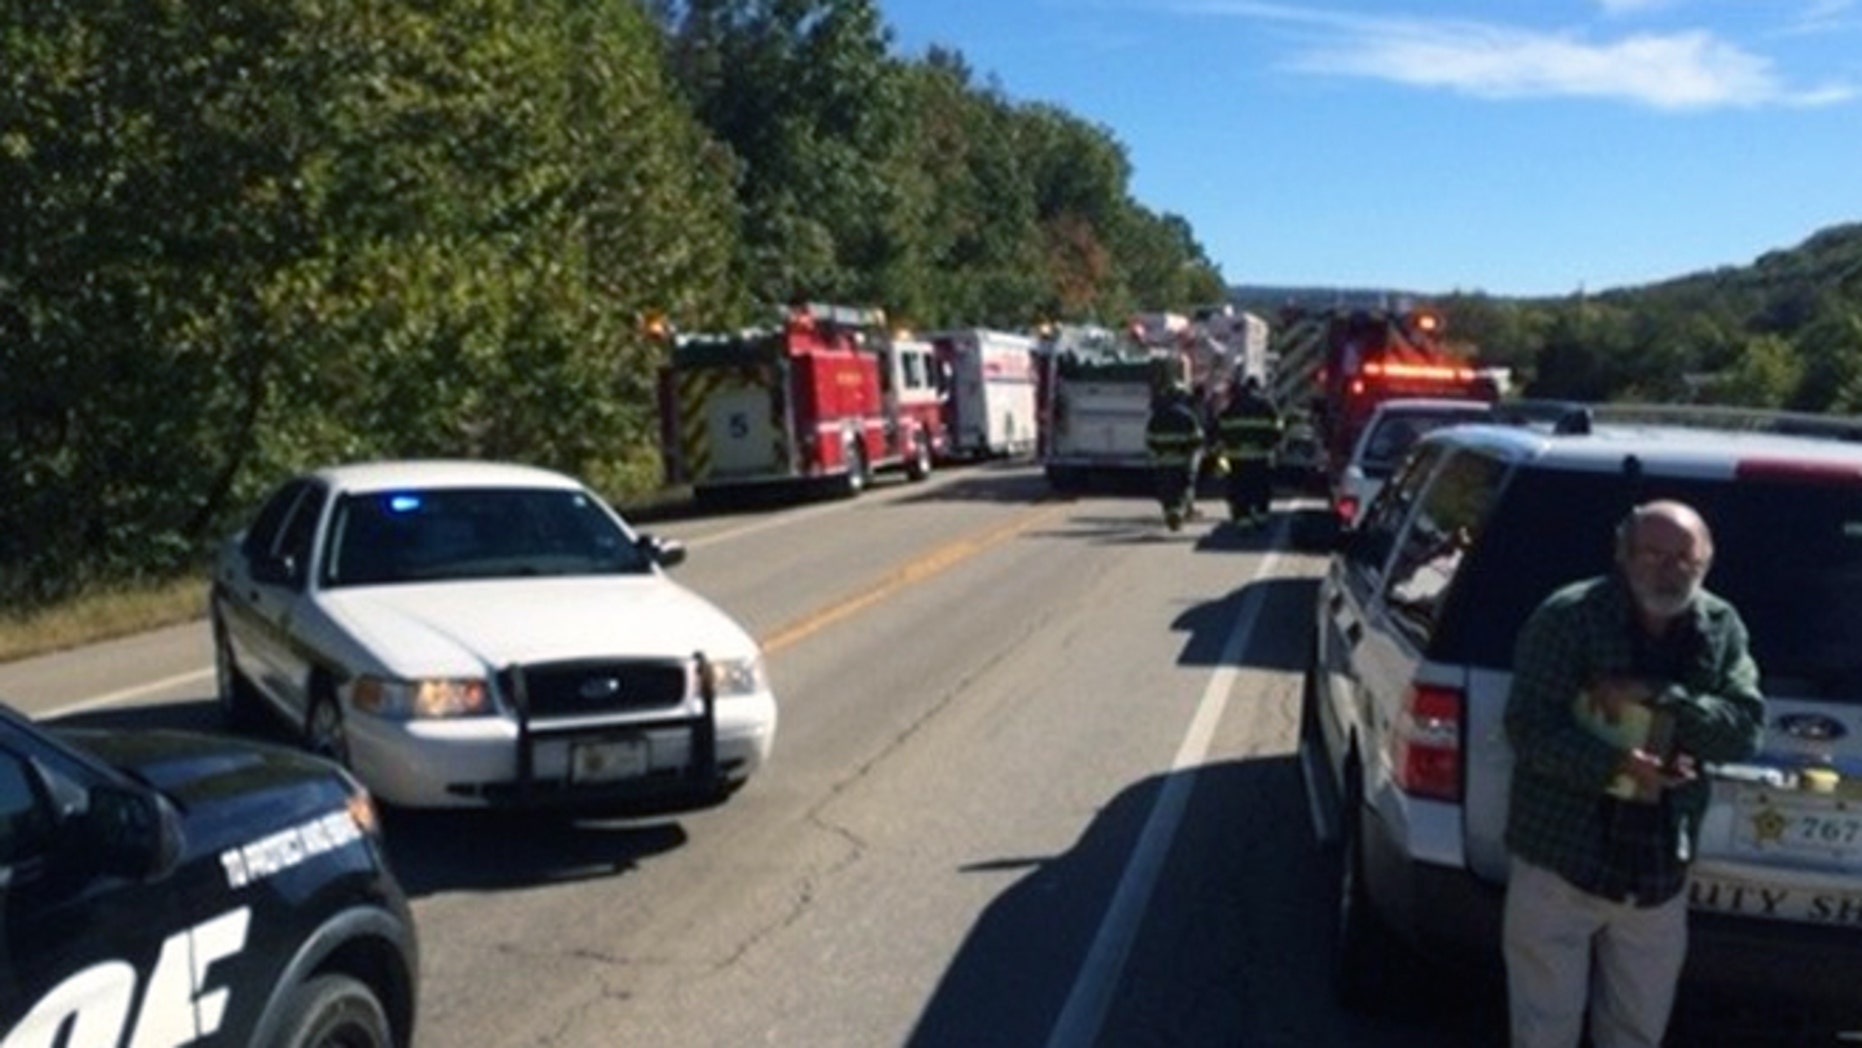 Emergency responders were at the scene in Washington County and transported 31 to local hospitals, 5NewsOnline.com reported.